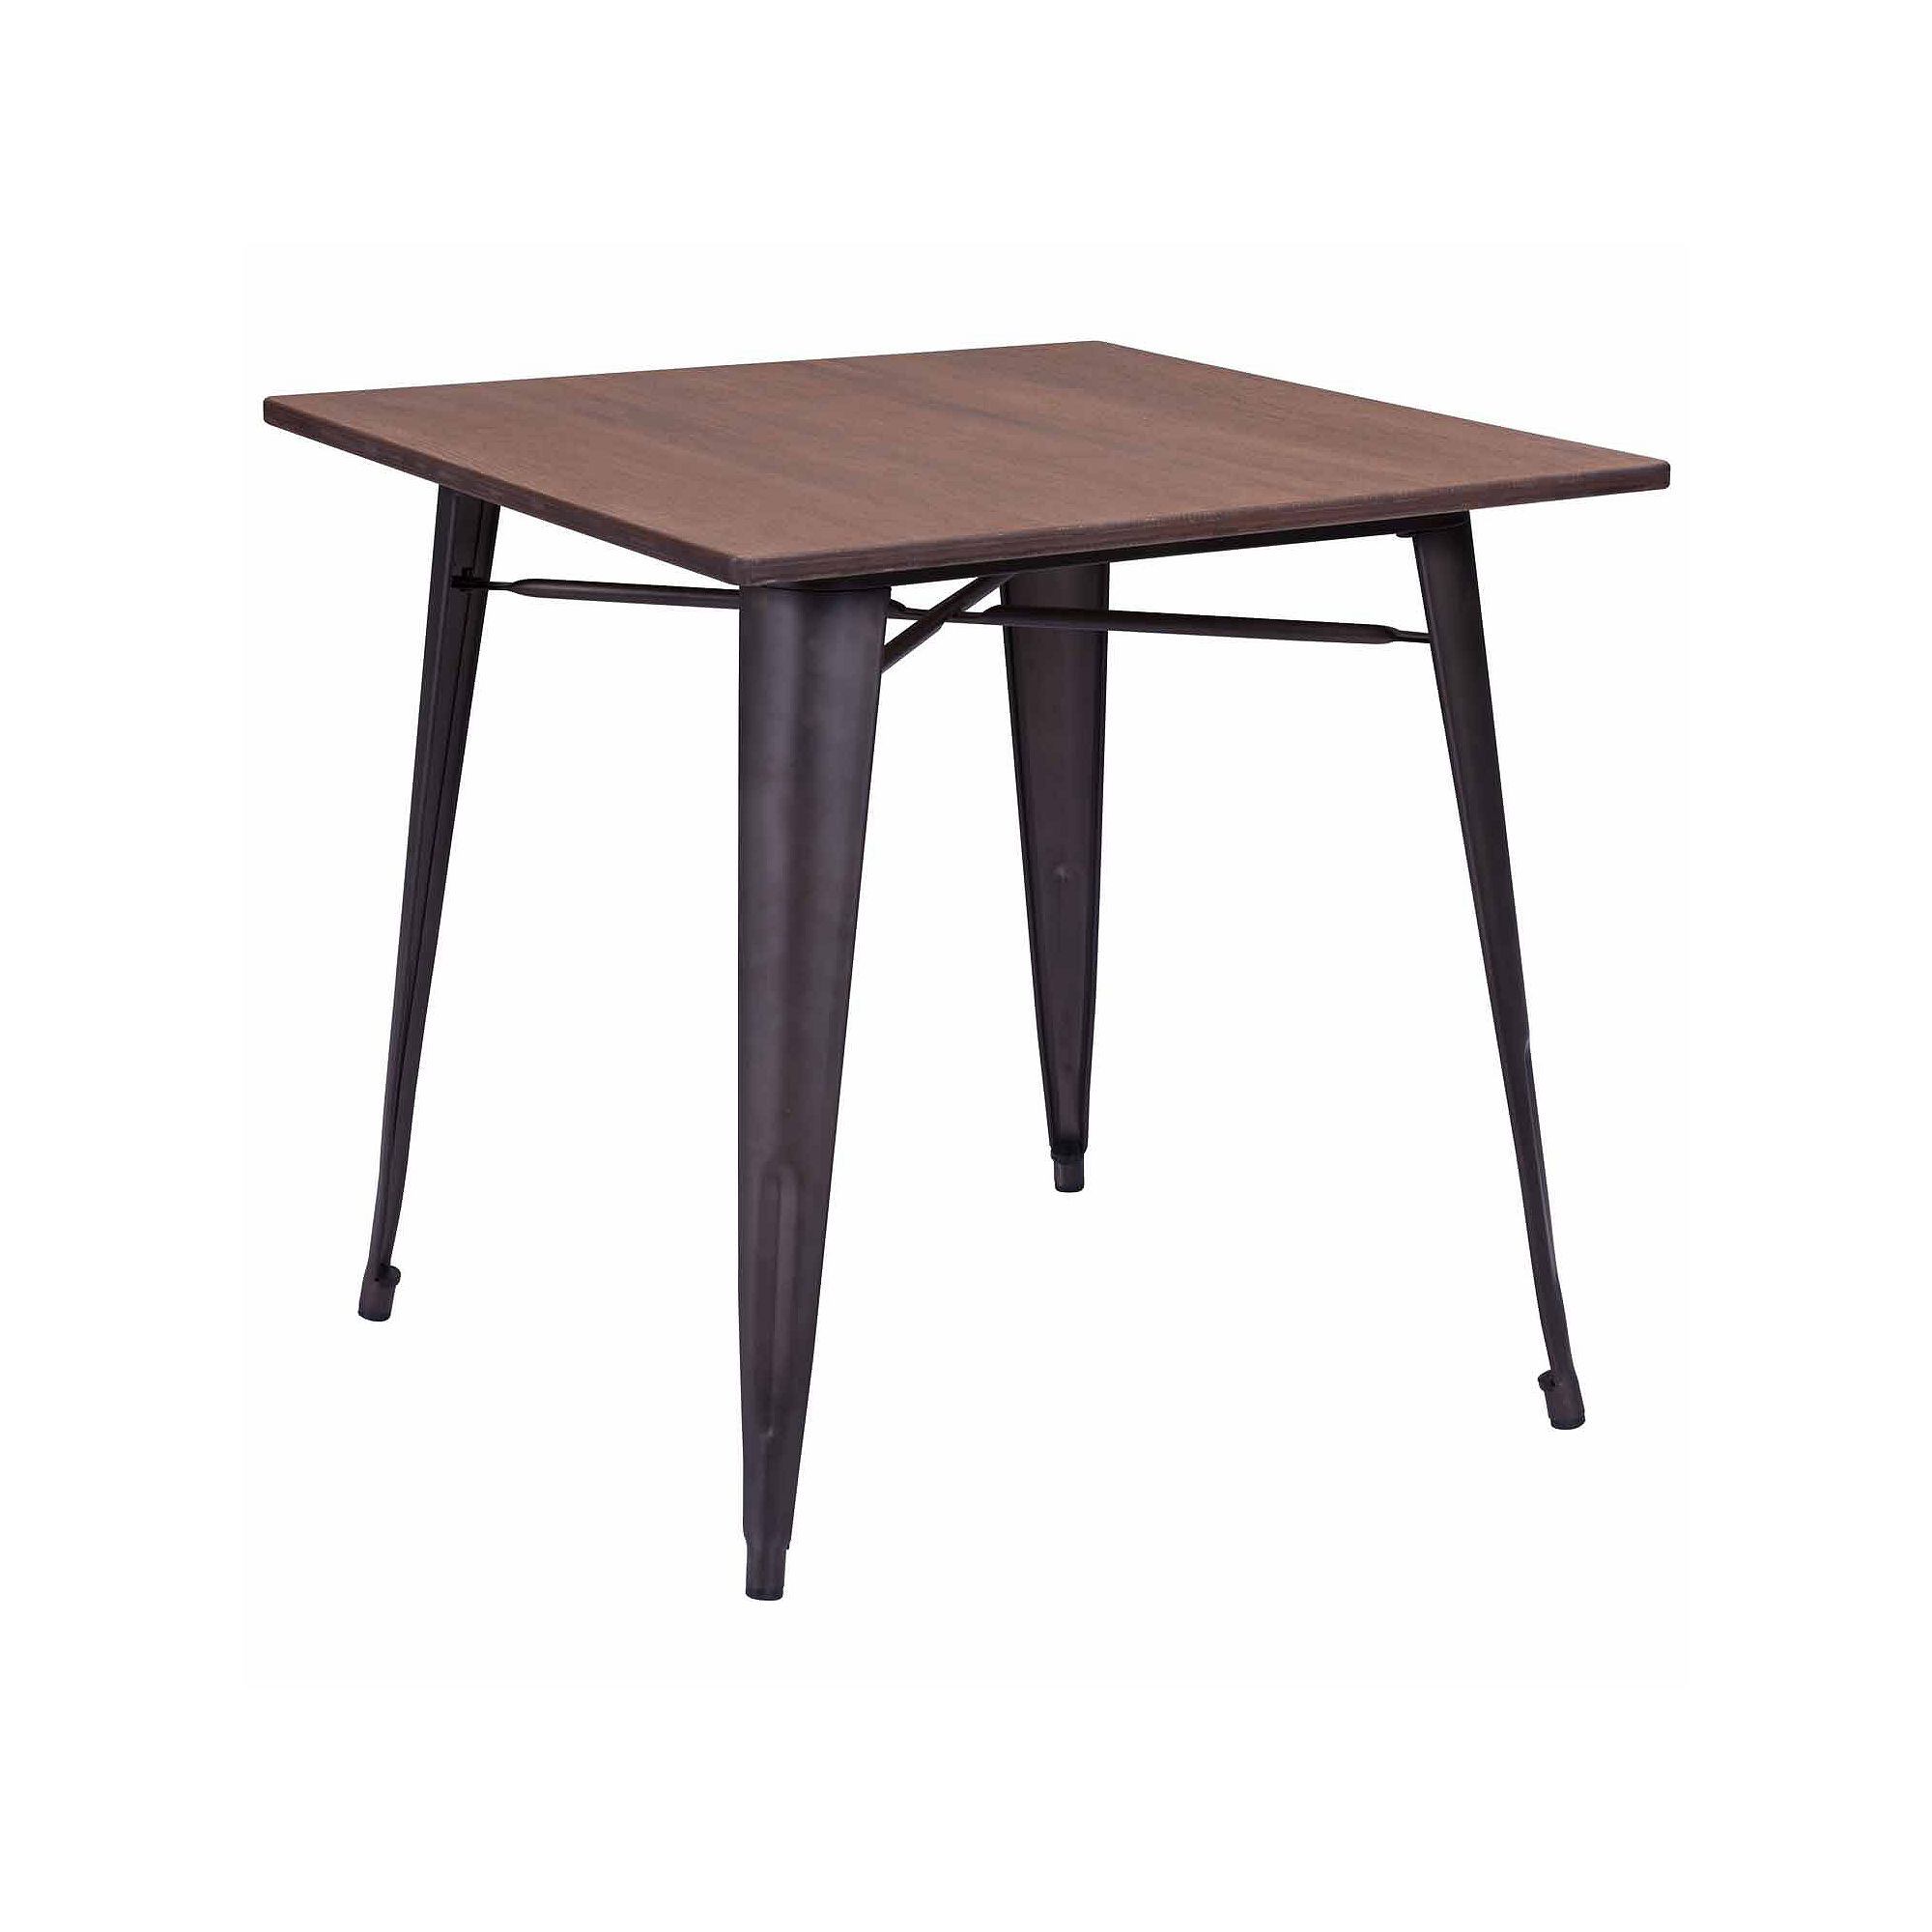 Zuo Modern Titus Square Dining Table